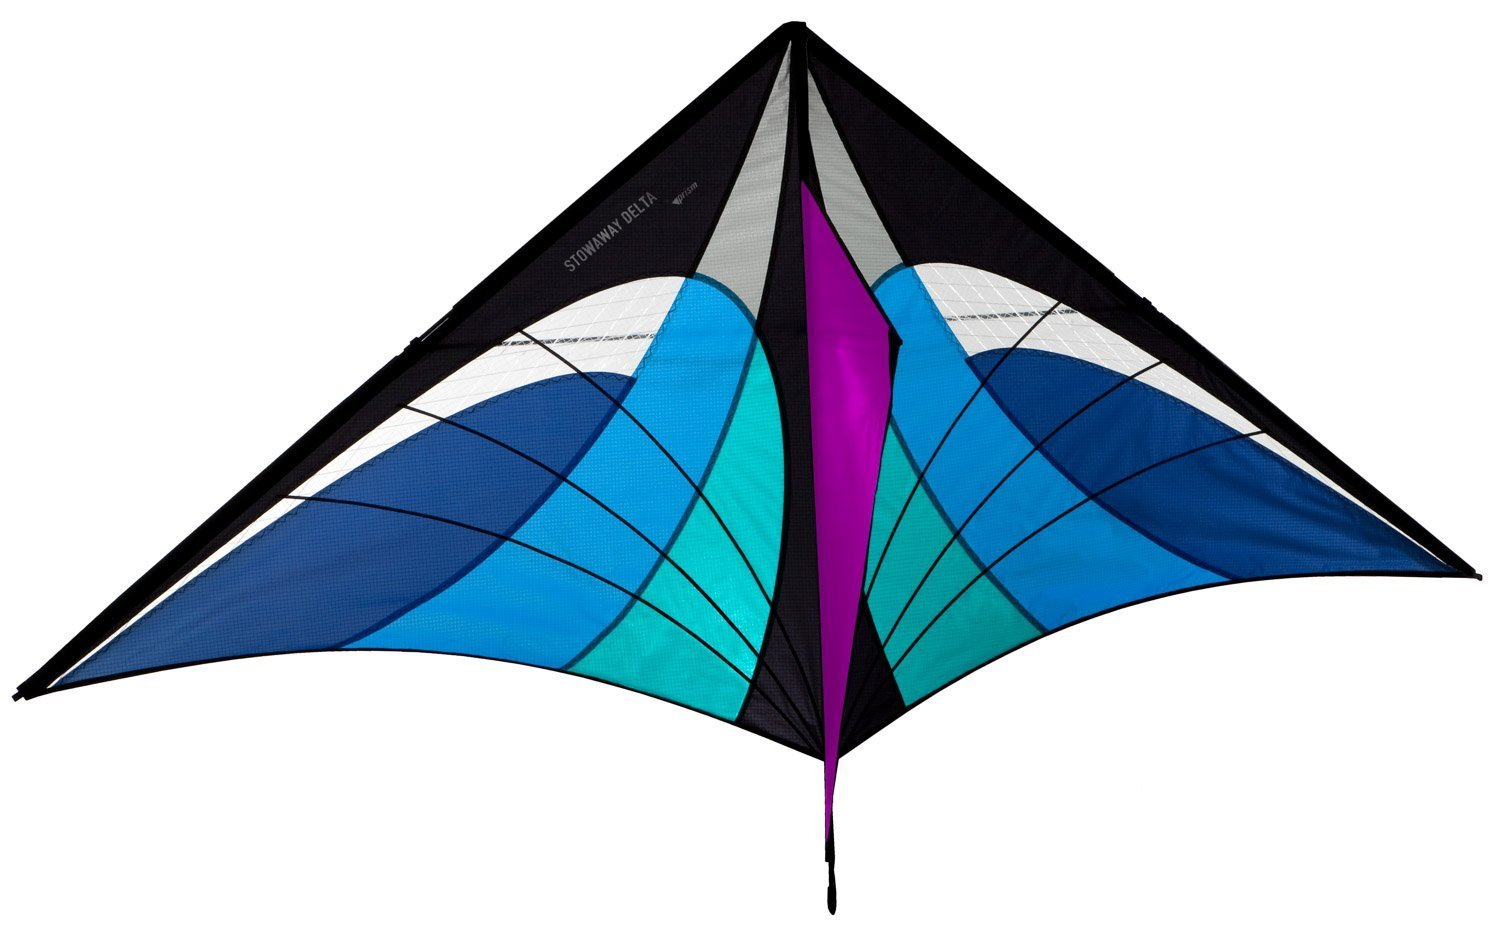 Prism Stowaway Delta Kite (Ice) by Prism Kite Technology (Image #1)